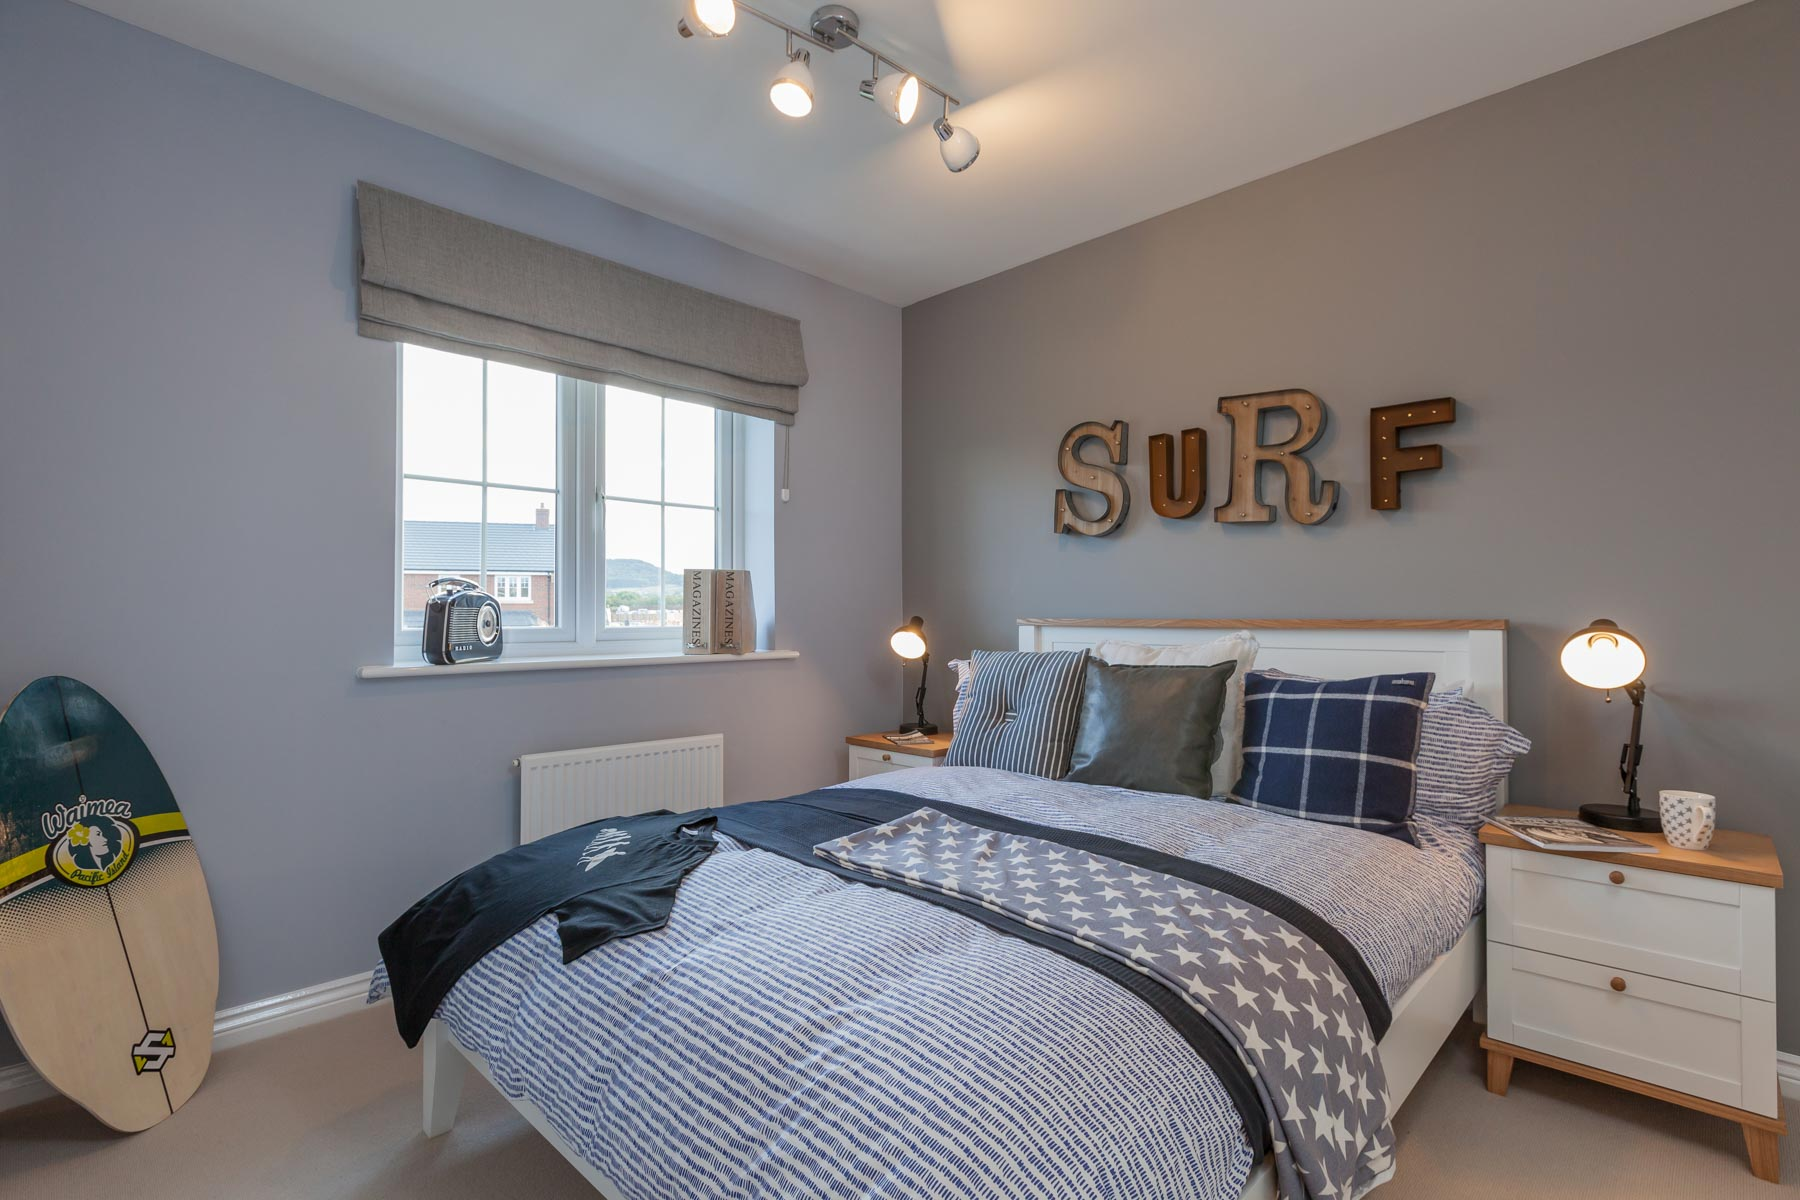 Taylor Wimpey Exeter - Cranbrook - Shelford example bedroom 3